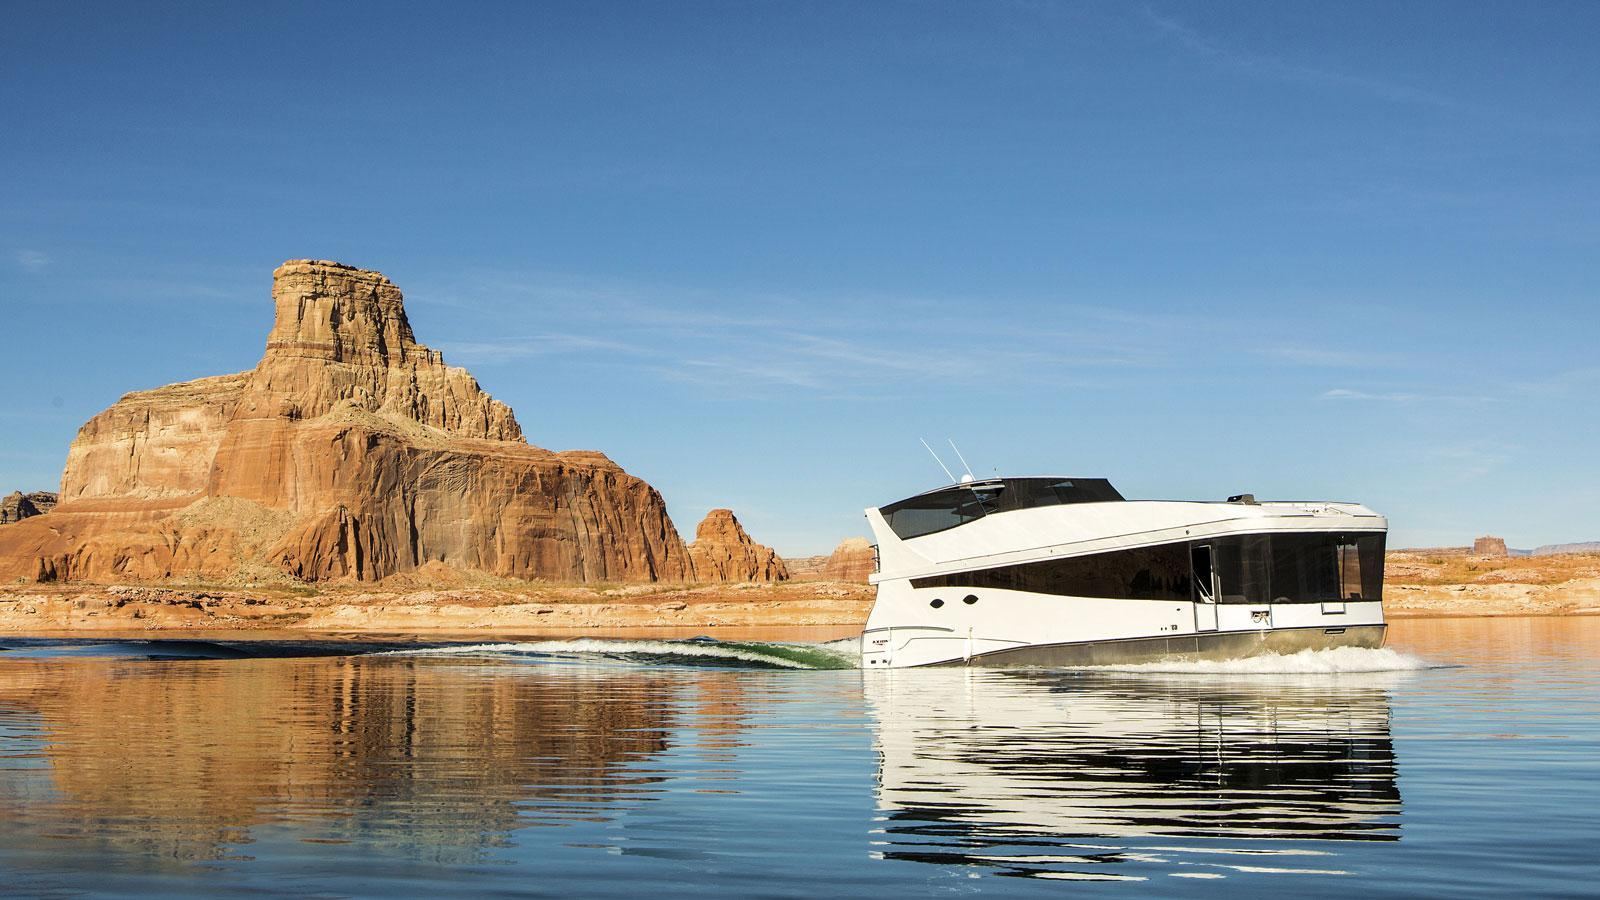 The brand new 65' Axiom Star Lake Yacht